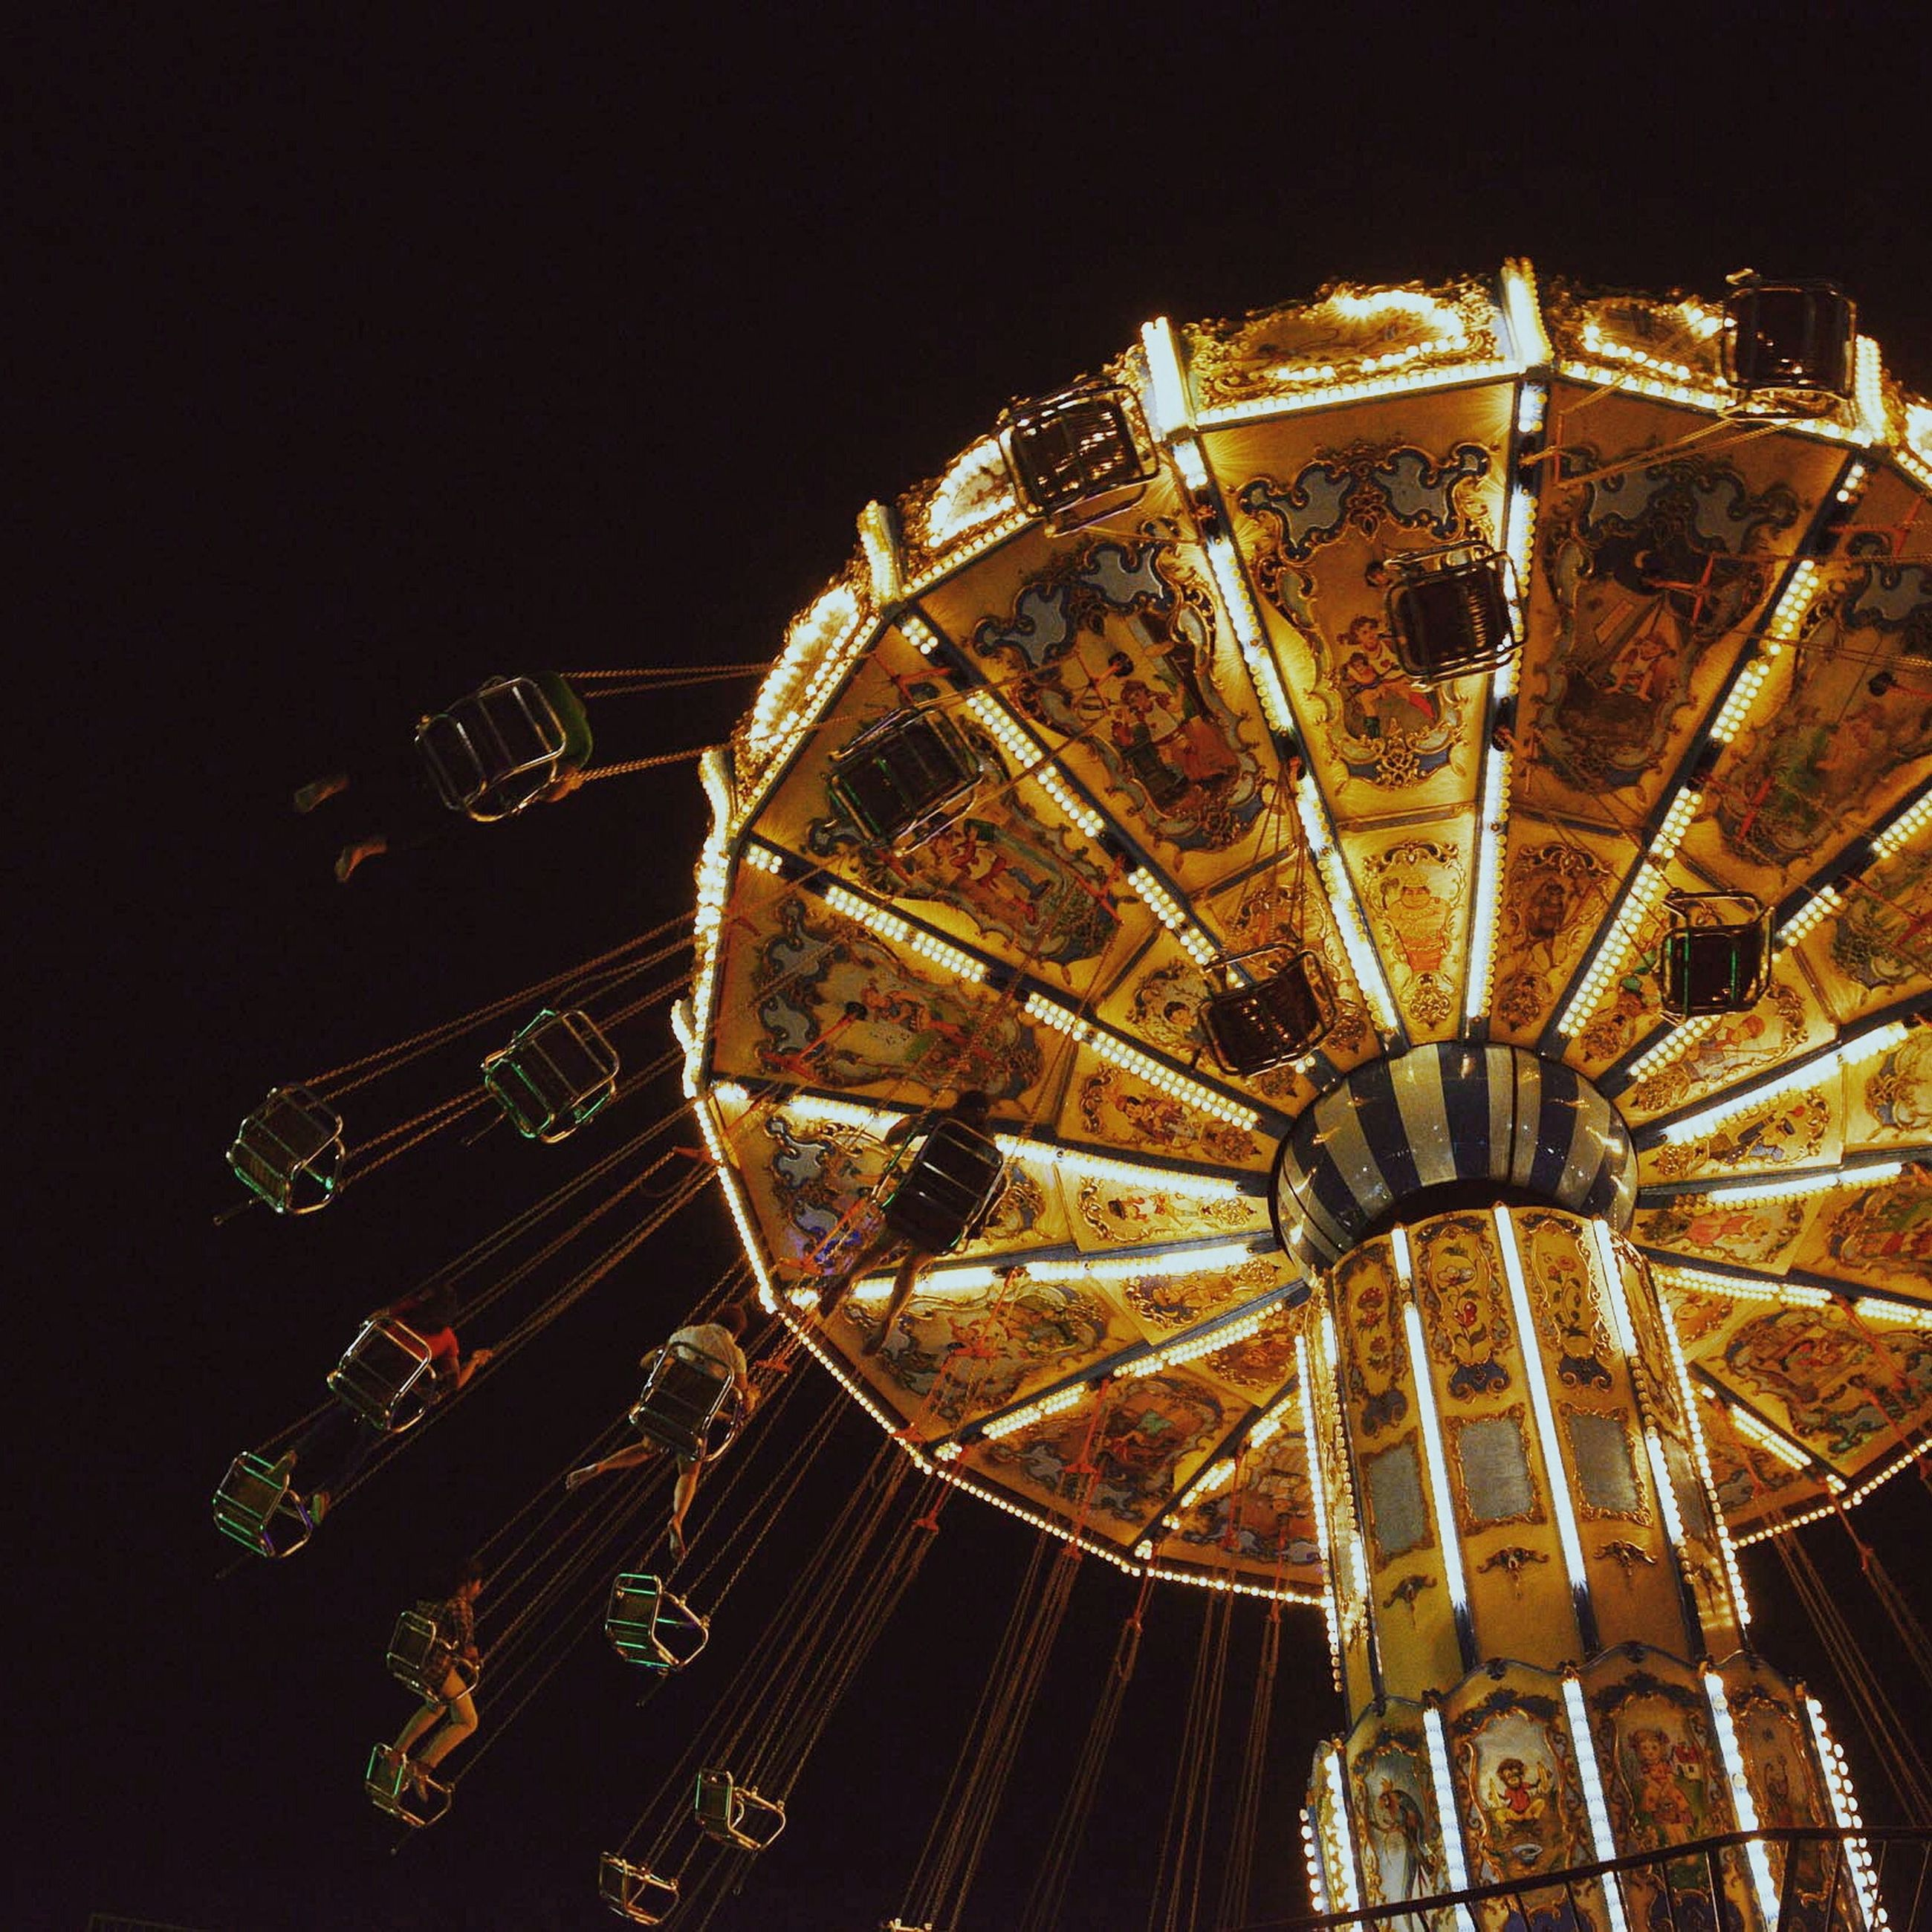 ferris wheel, amusement park ride, amusement park, arts culture and entertainment, architecture, built structure, night, illuminated, low angle view, travel destinations, famous place, capital cities, city, building exterior, international landmark, tourism, travel, sky, tall - high, modern